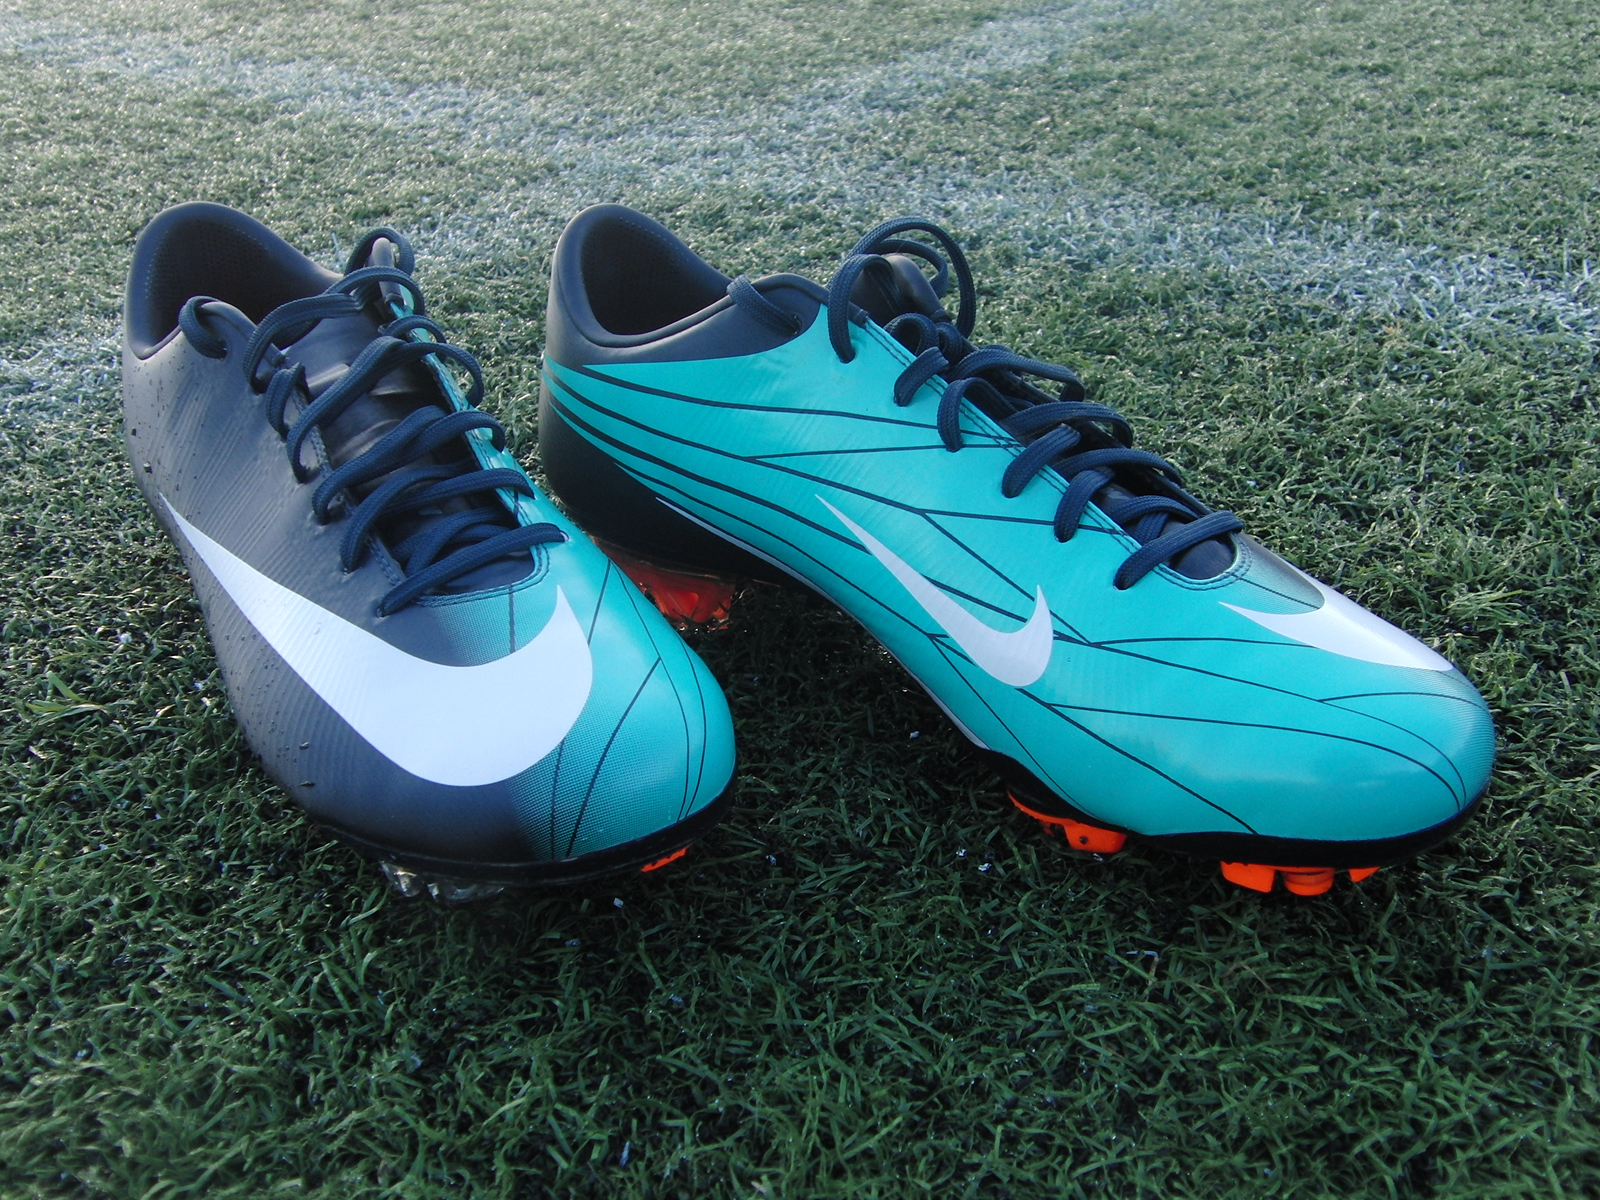 rival crimen pasillo  Nike Mercurial Superfly II Review | Soccer Cleats 101